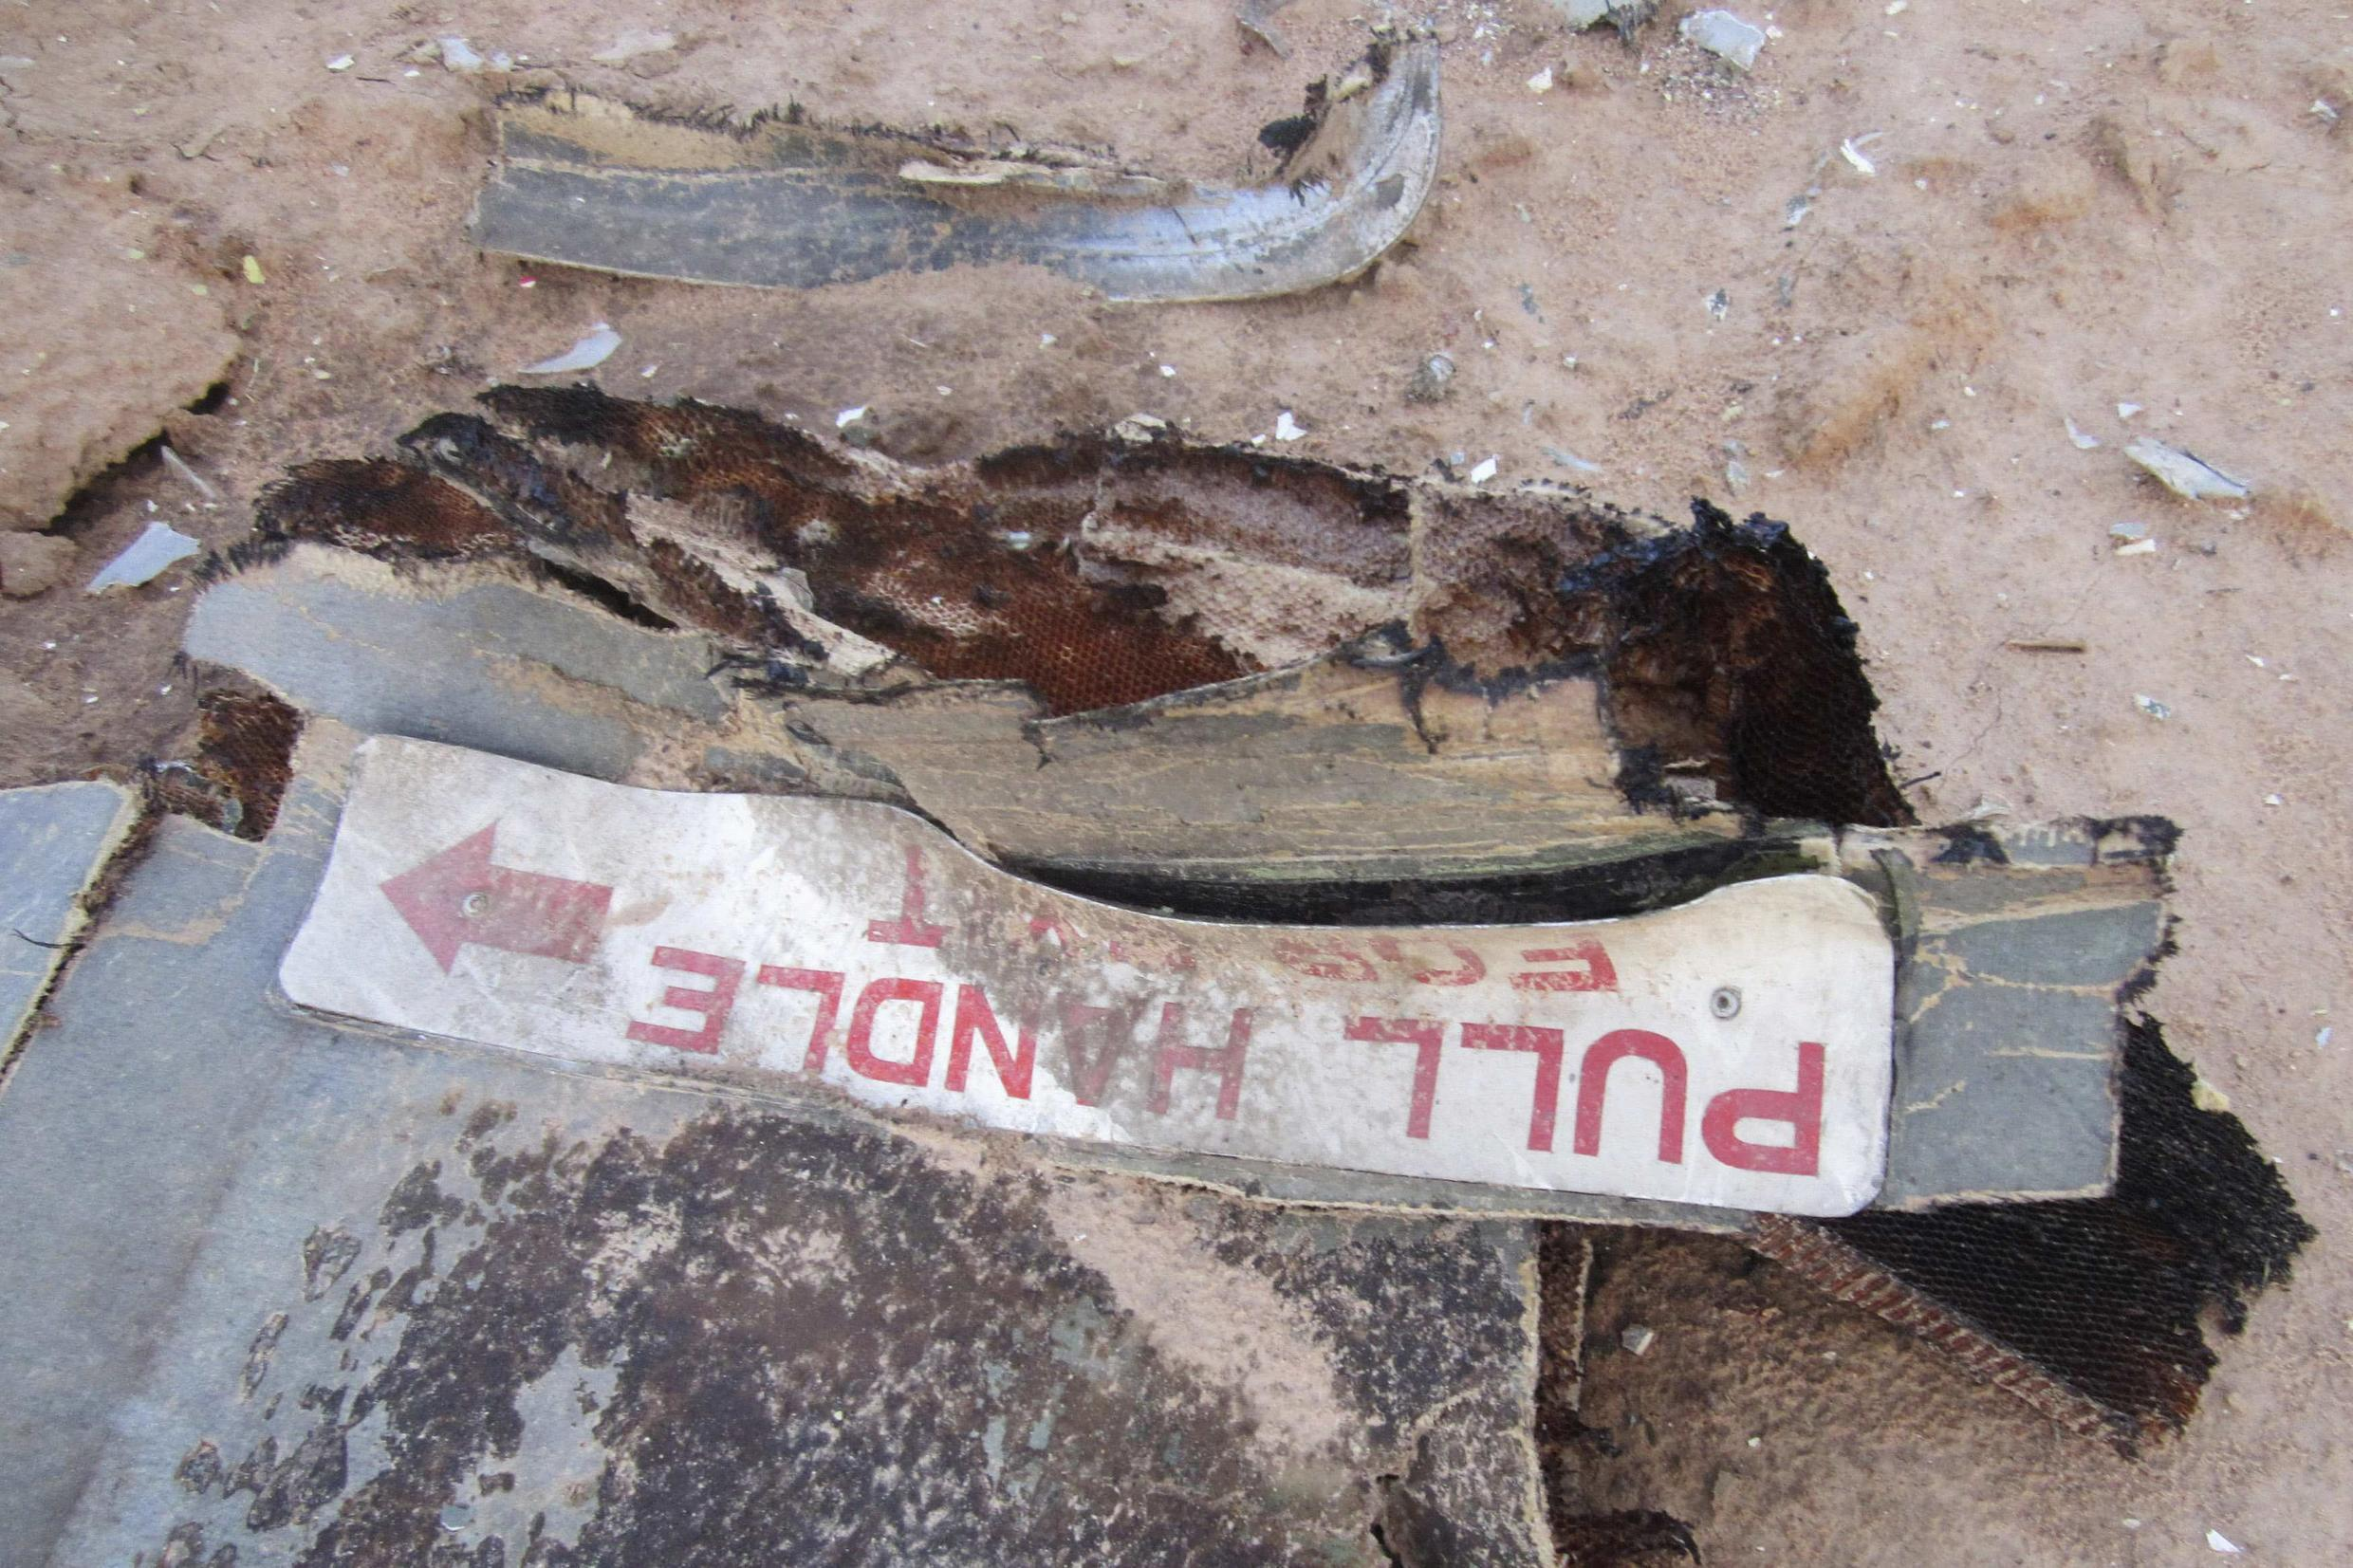 Debris from the crashed Air Algérie plane at the site of the accident in Mali